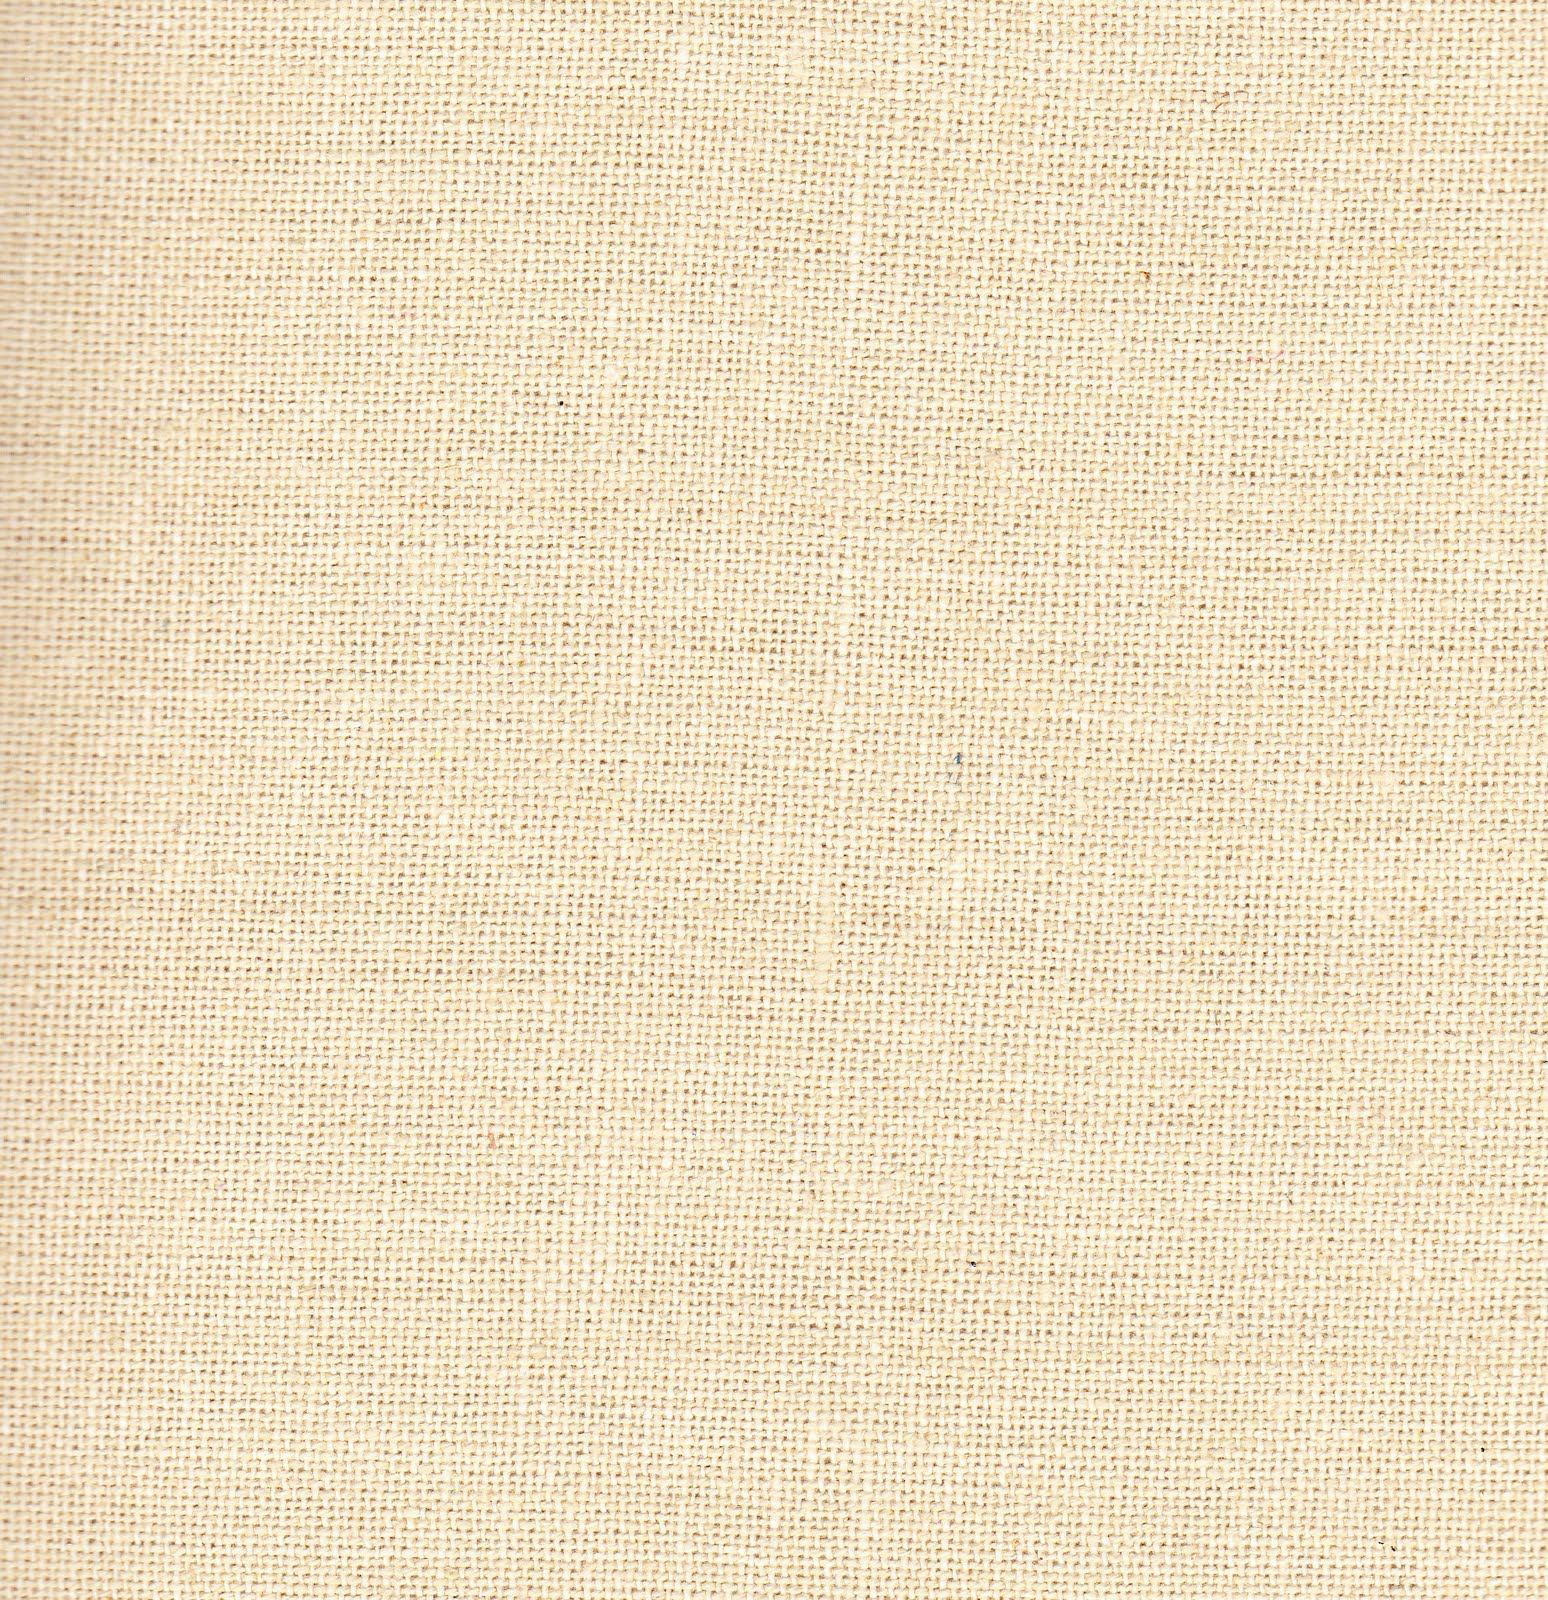 Cream Backgrounds Or applique backgrounds 1548x1600